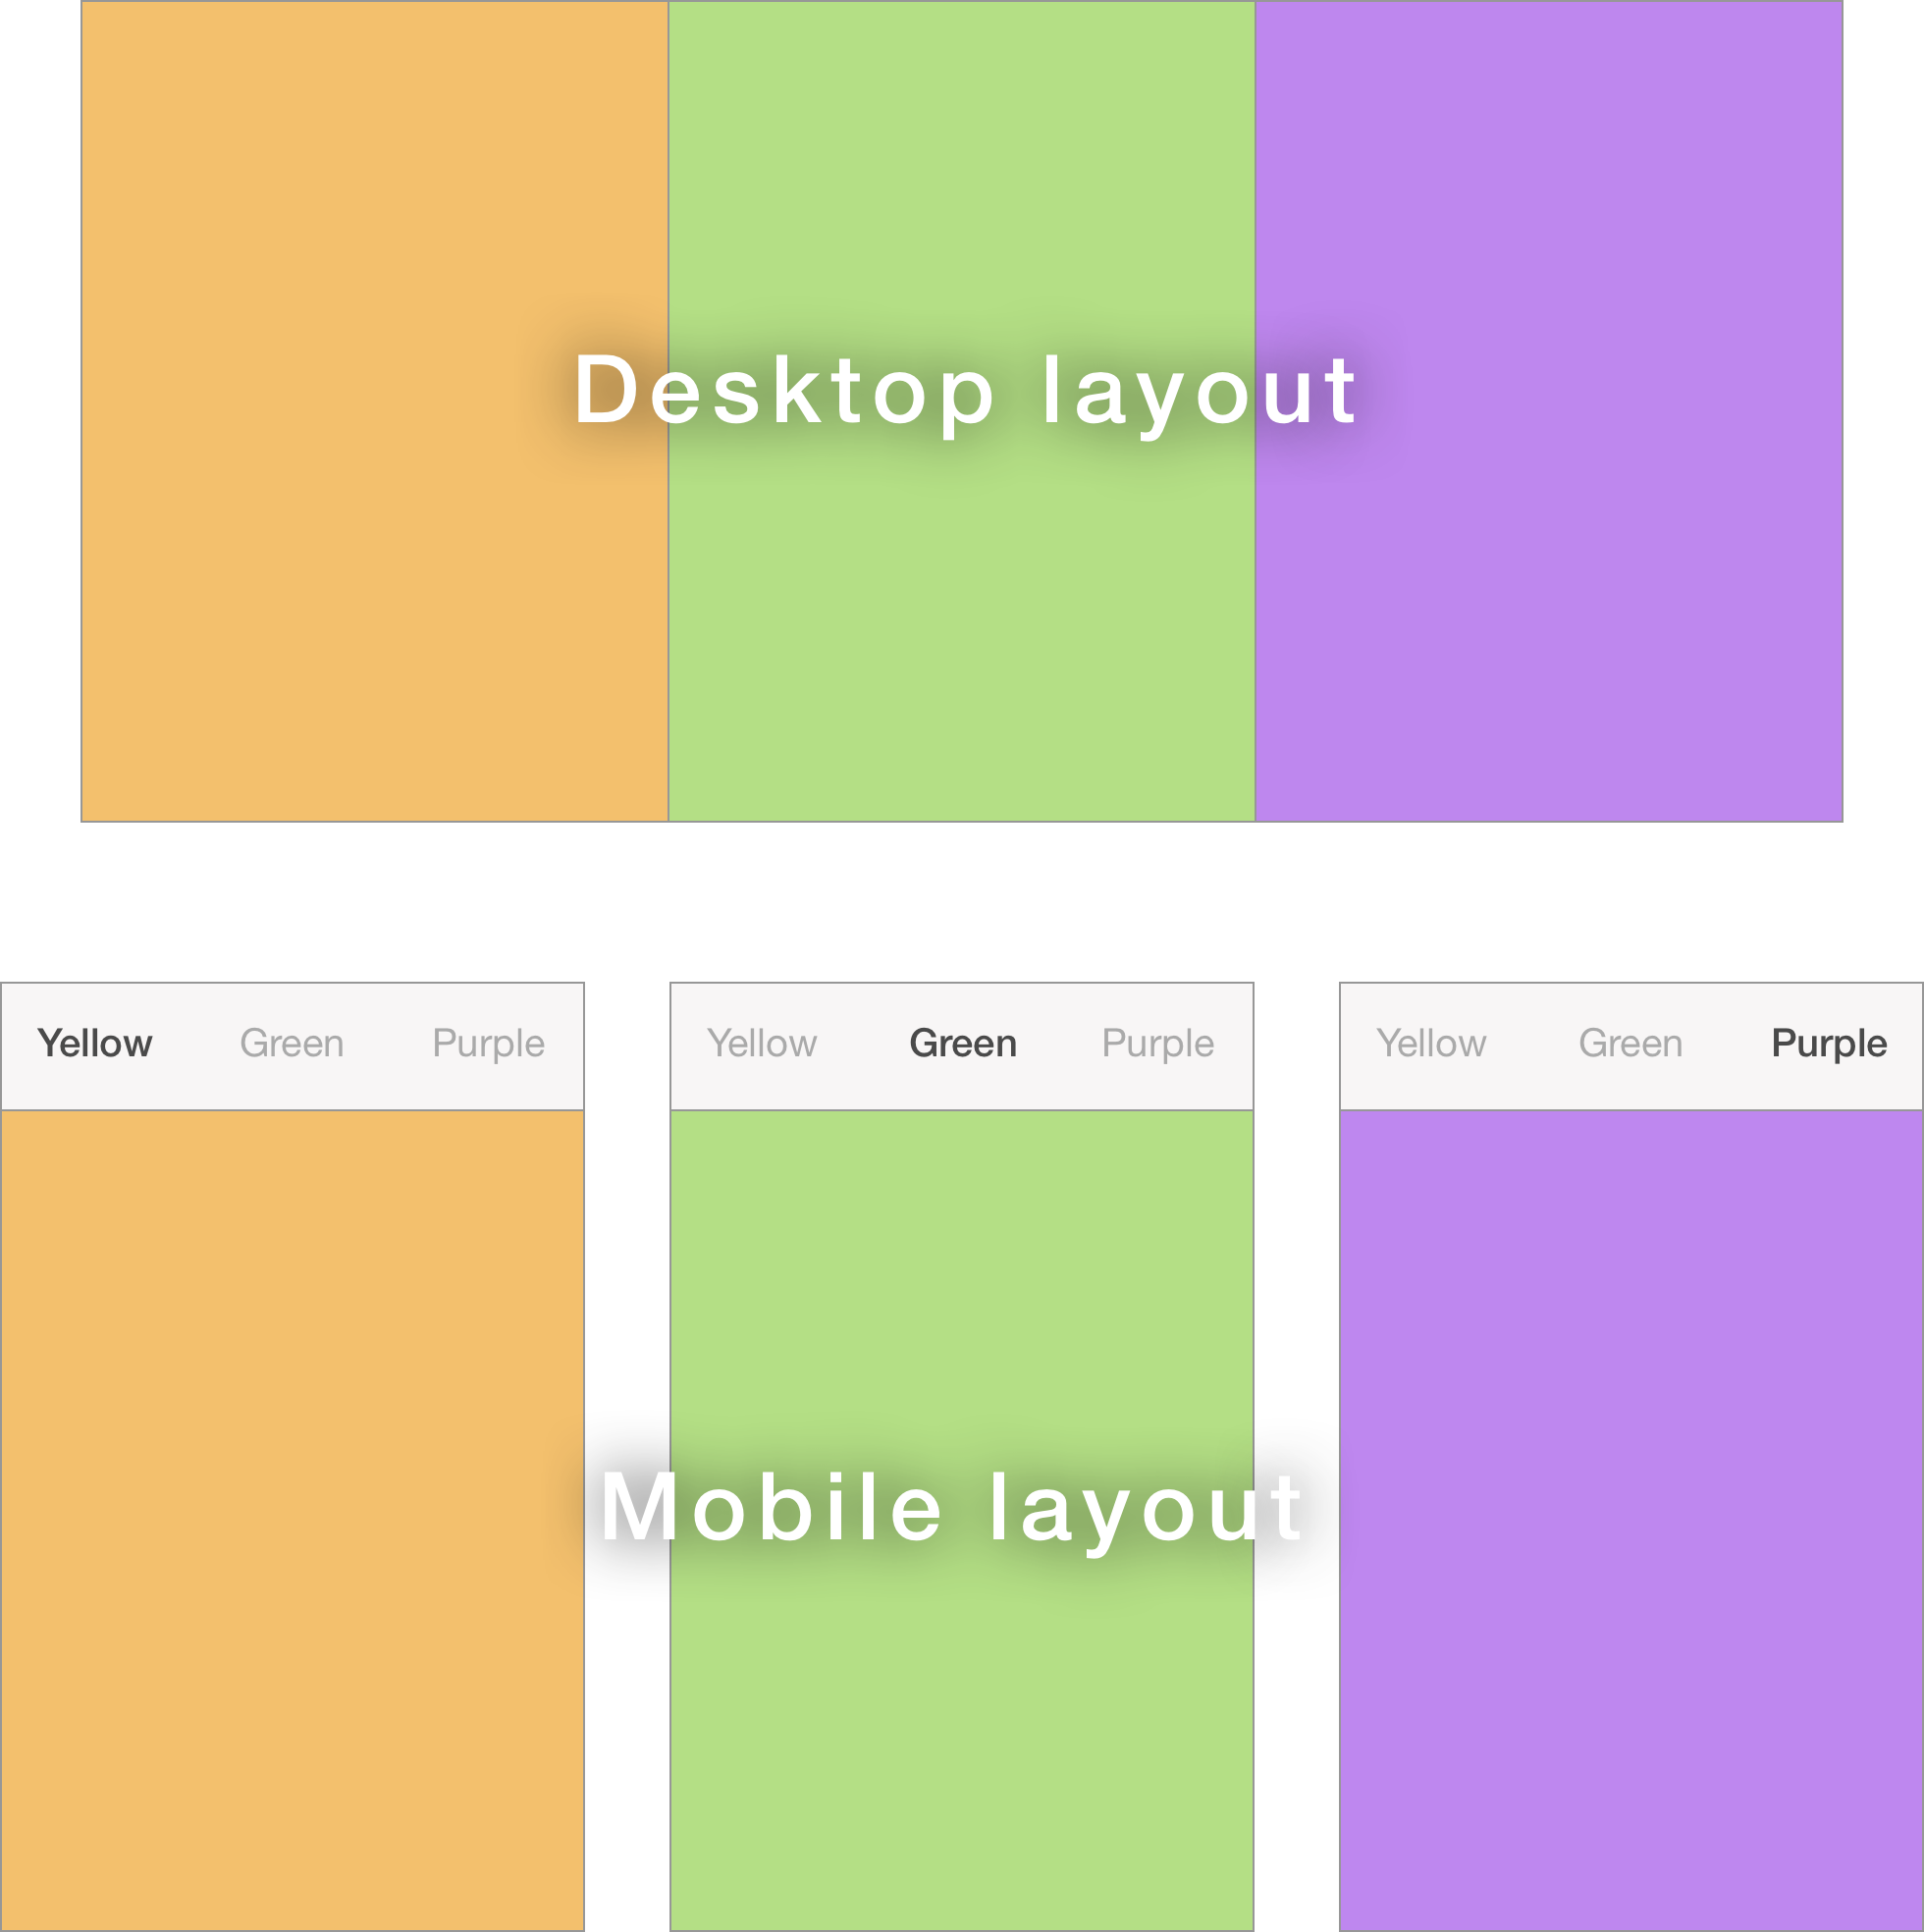 Different mobile and desktop layouts with React - Gosha Arinich